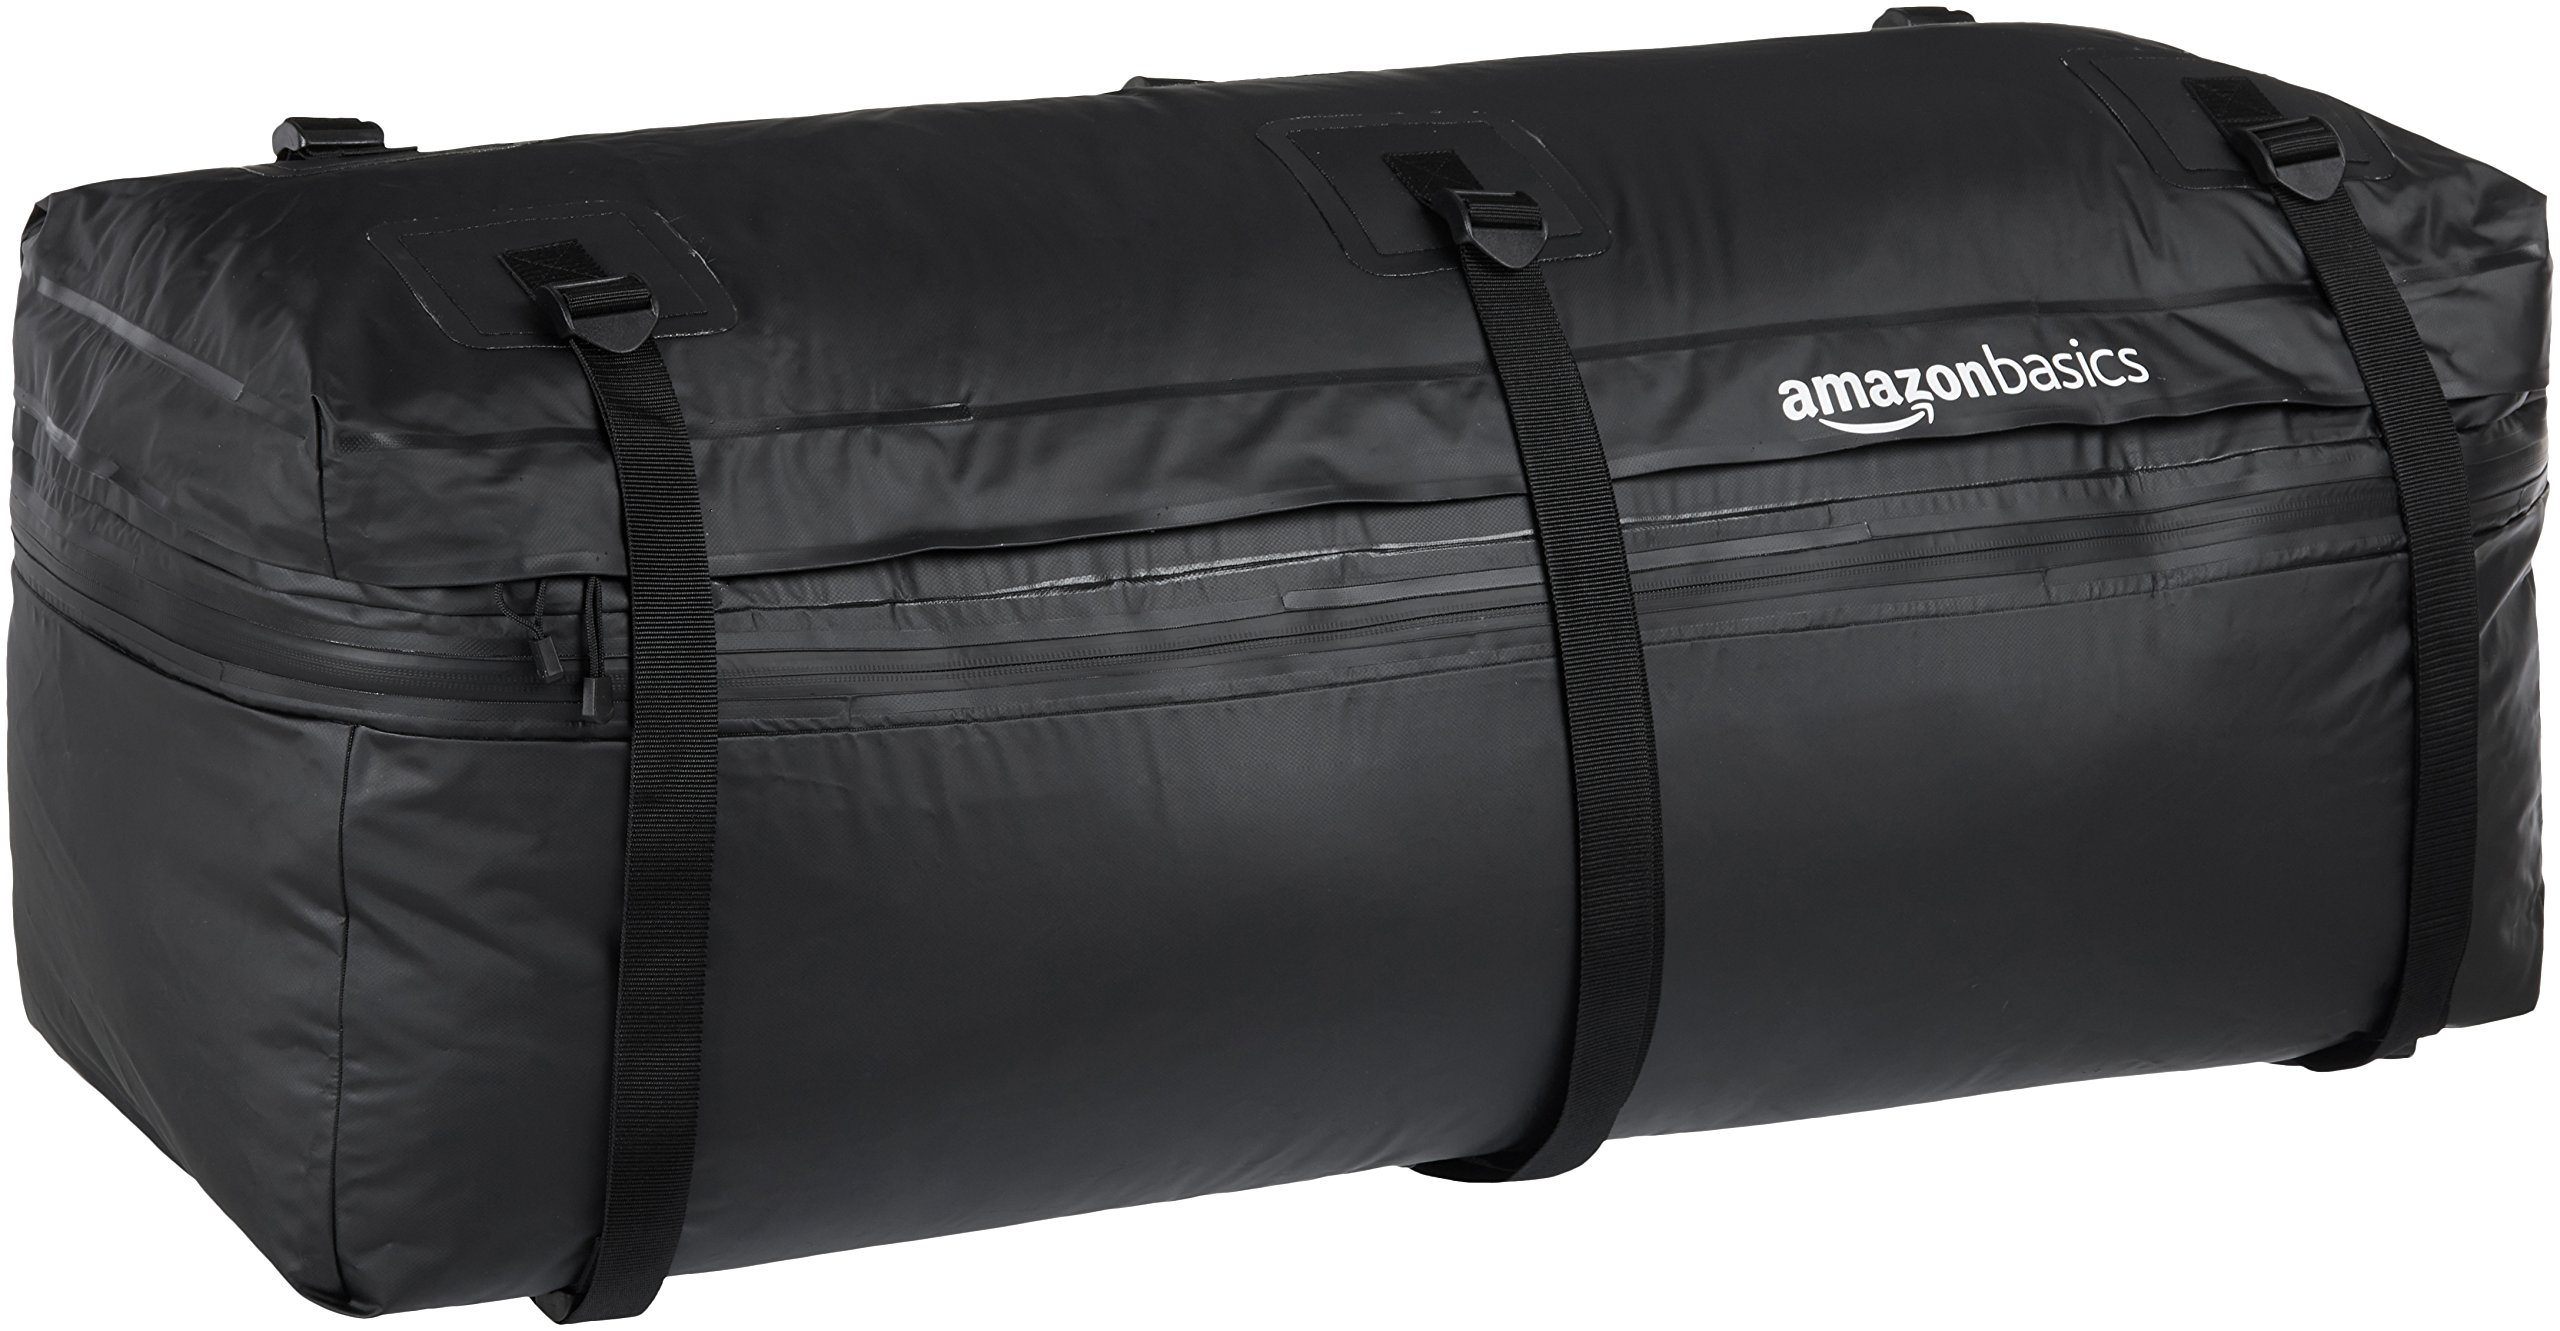 AmazonBasics Expandable Hitch Rack Cargo Carrier Bag, Black, 9.5 cu. ft. expandable to 11.5 cu. ft. by AmazonBasics